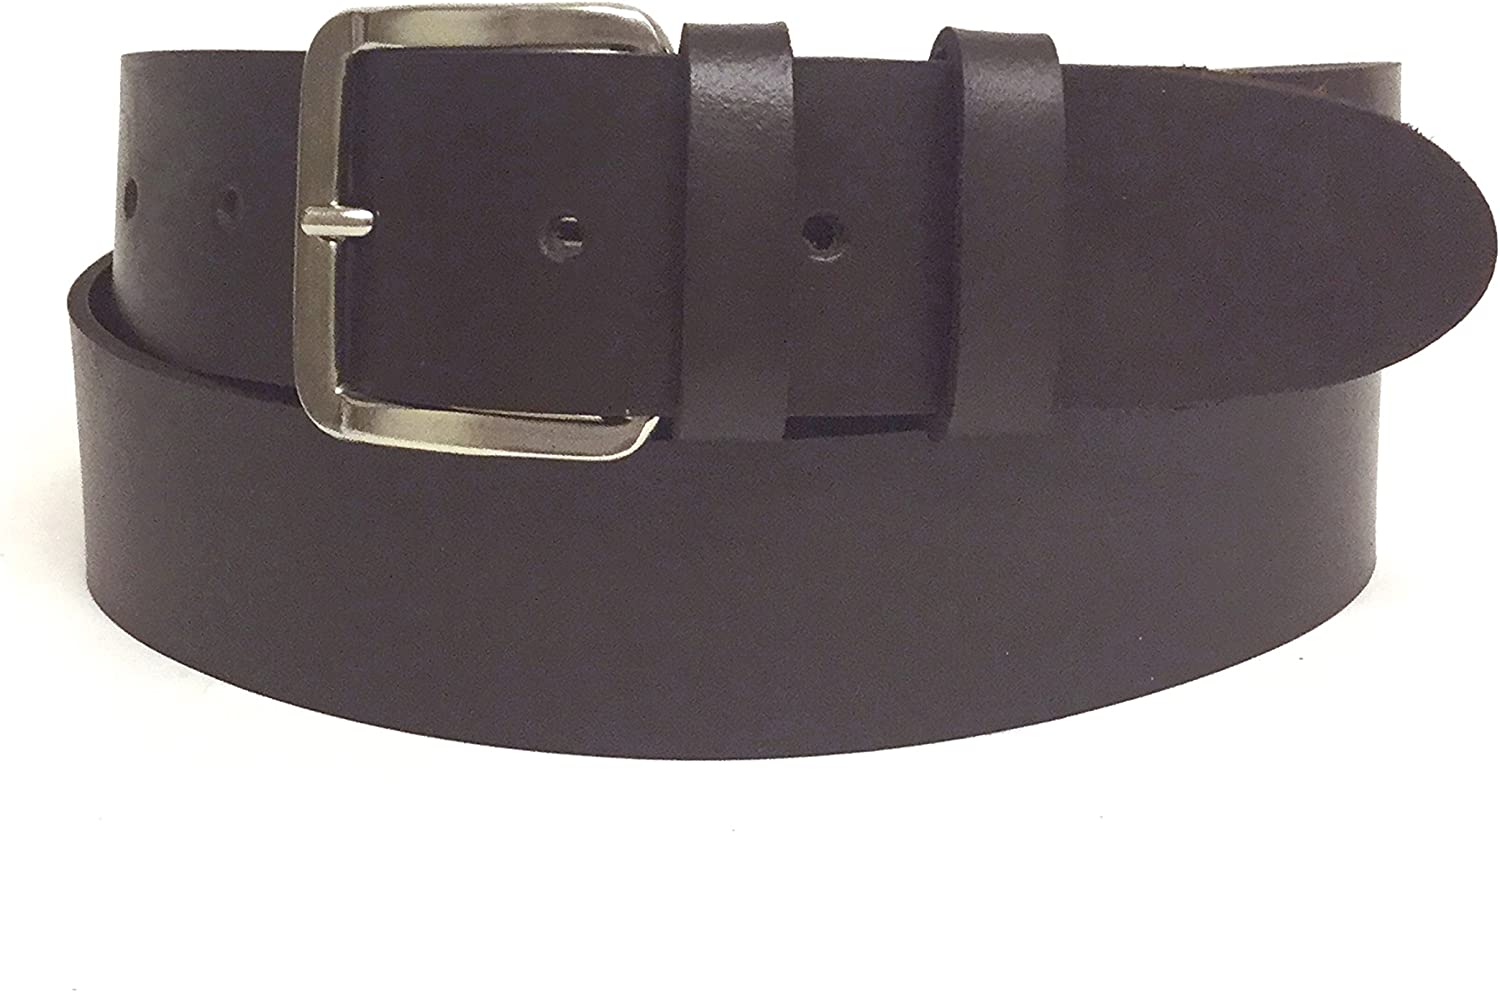 REAL LEATHER BELT LOOPS OR KEEPERS IN 8 DIFFERENT COLOURS AND 5 DIFFERENT SIZES